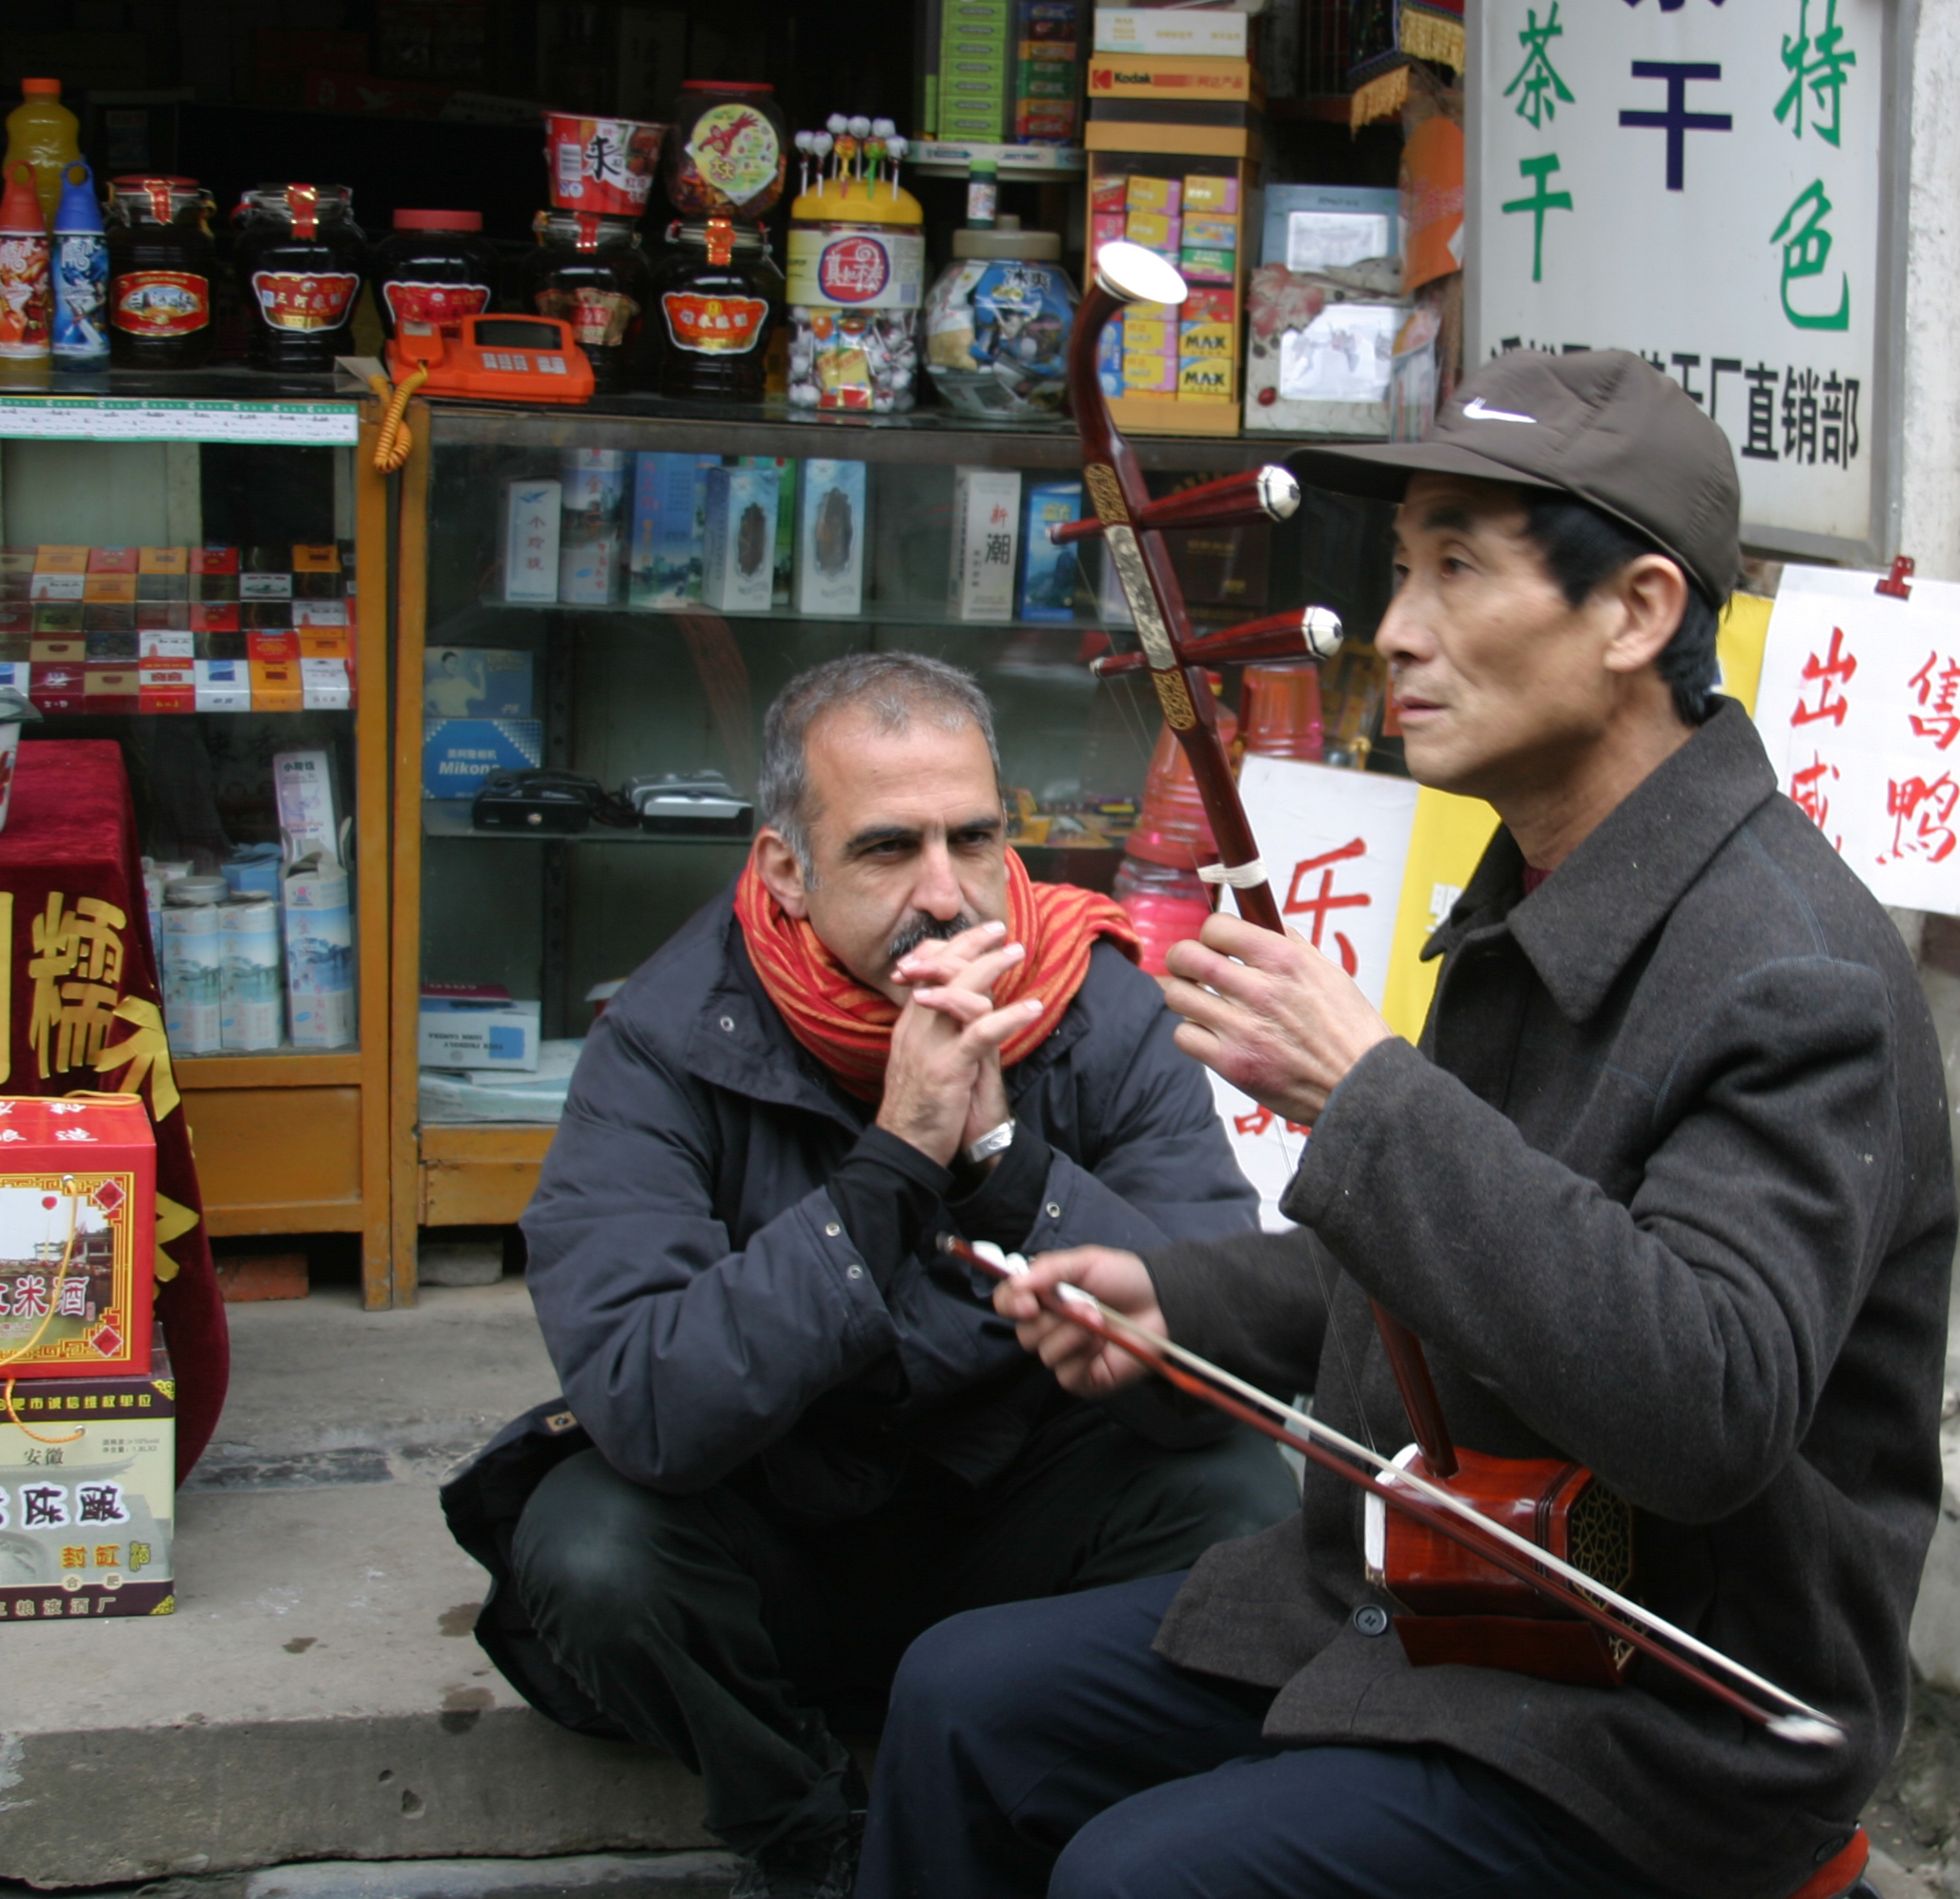 With the Blind Street Musician